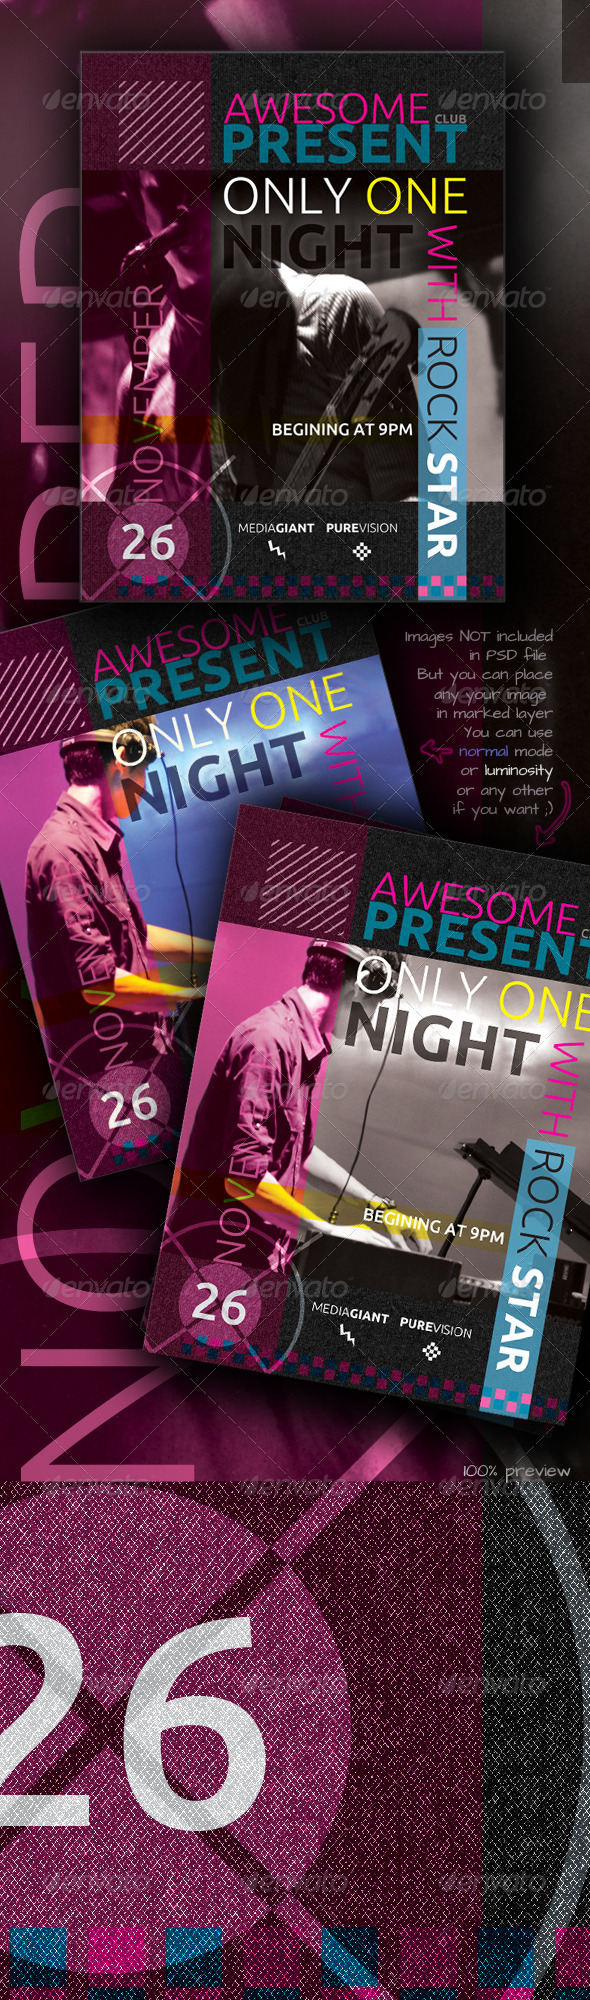 Awesome Club Flyer - Clubs & Parties Events